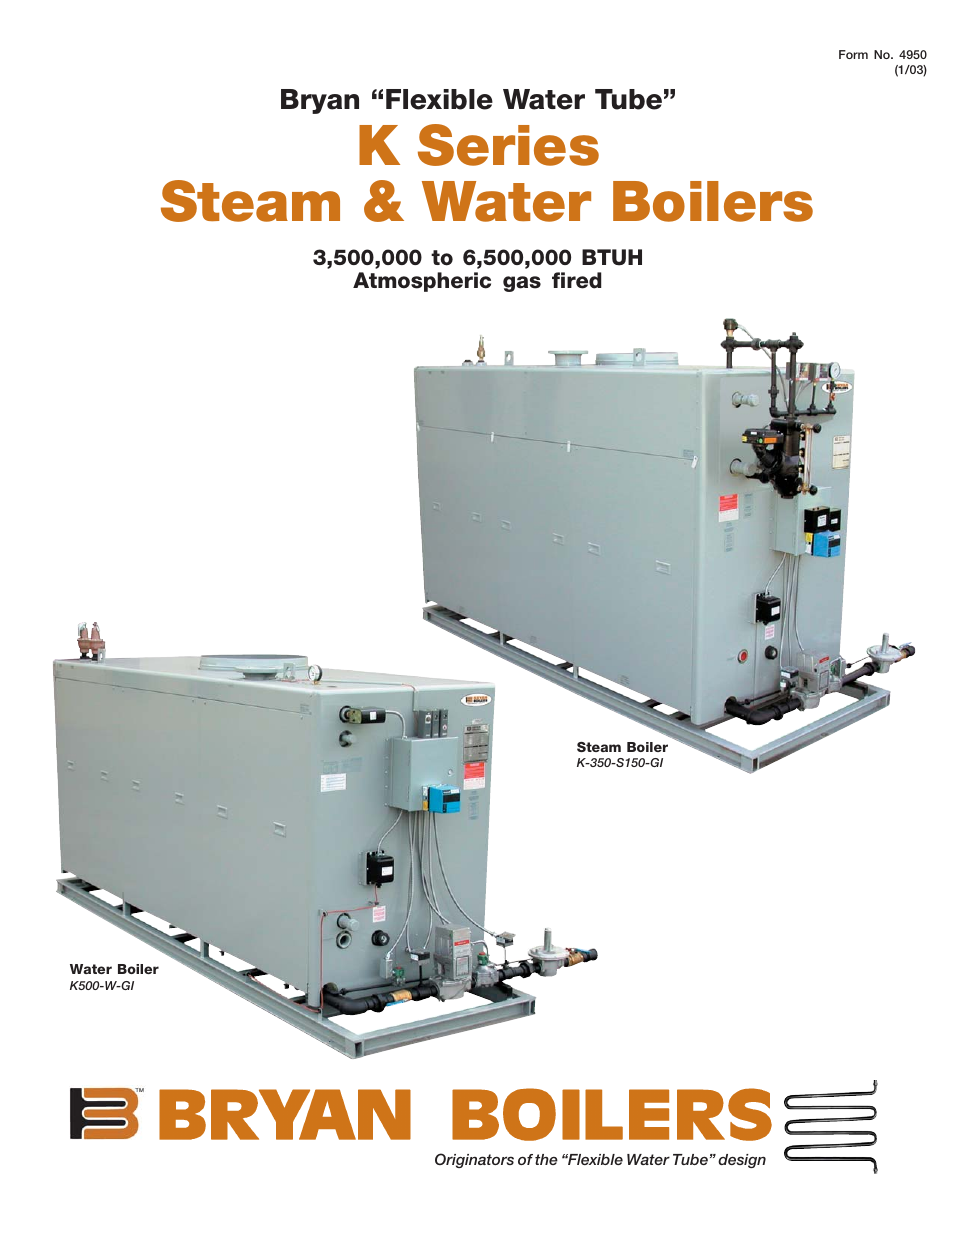 Bryan Boilers K500-W-GI User Manual | 4 pages | Also for: K-350-S150-GI